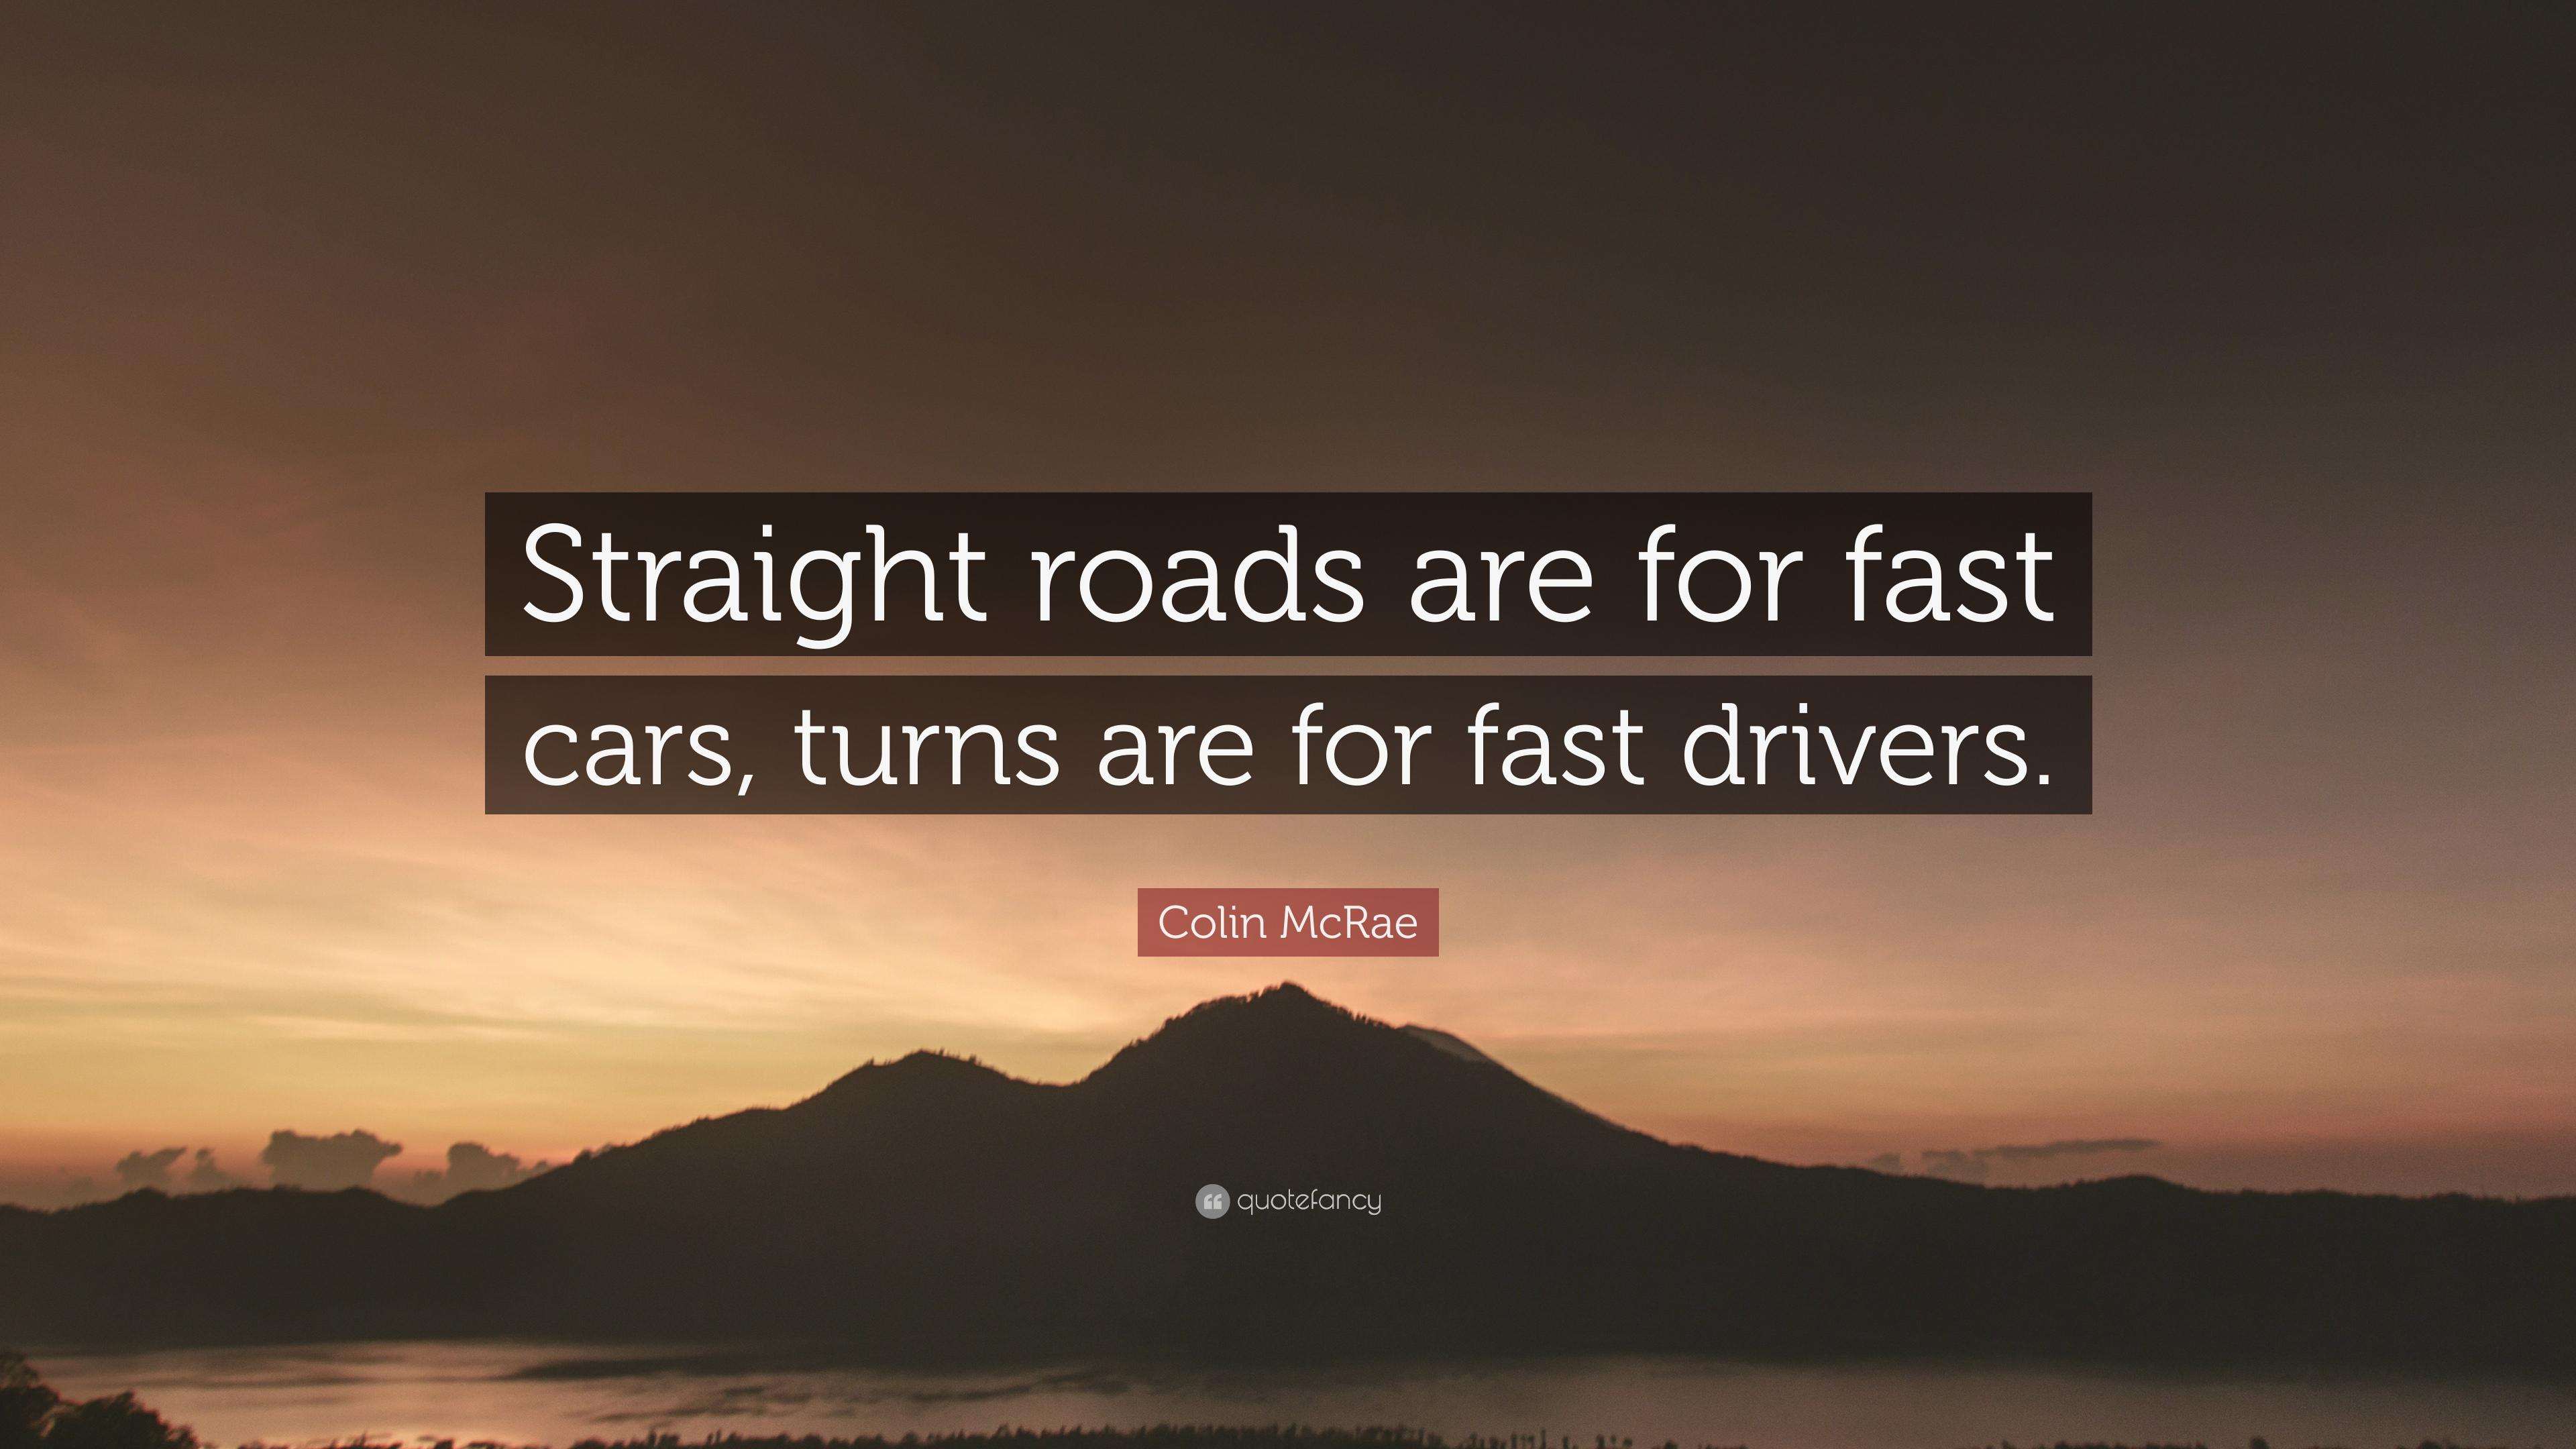 Colin Mcrae Quote Straight Roads Are For Fast Cars Turns Are For